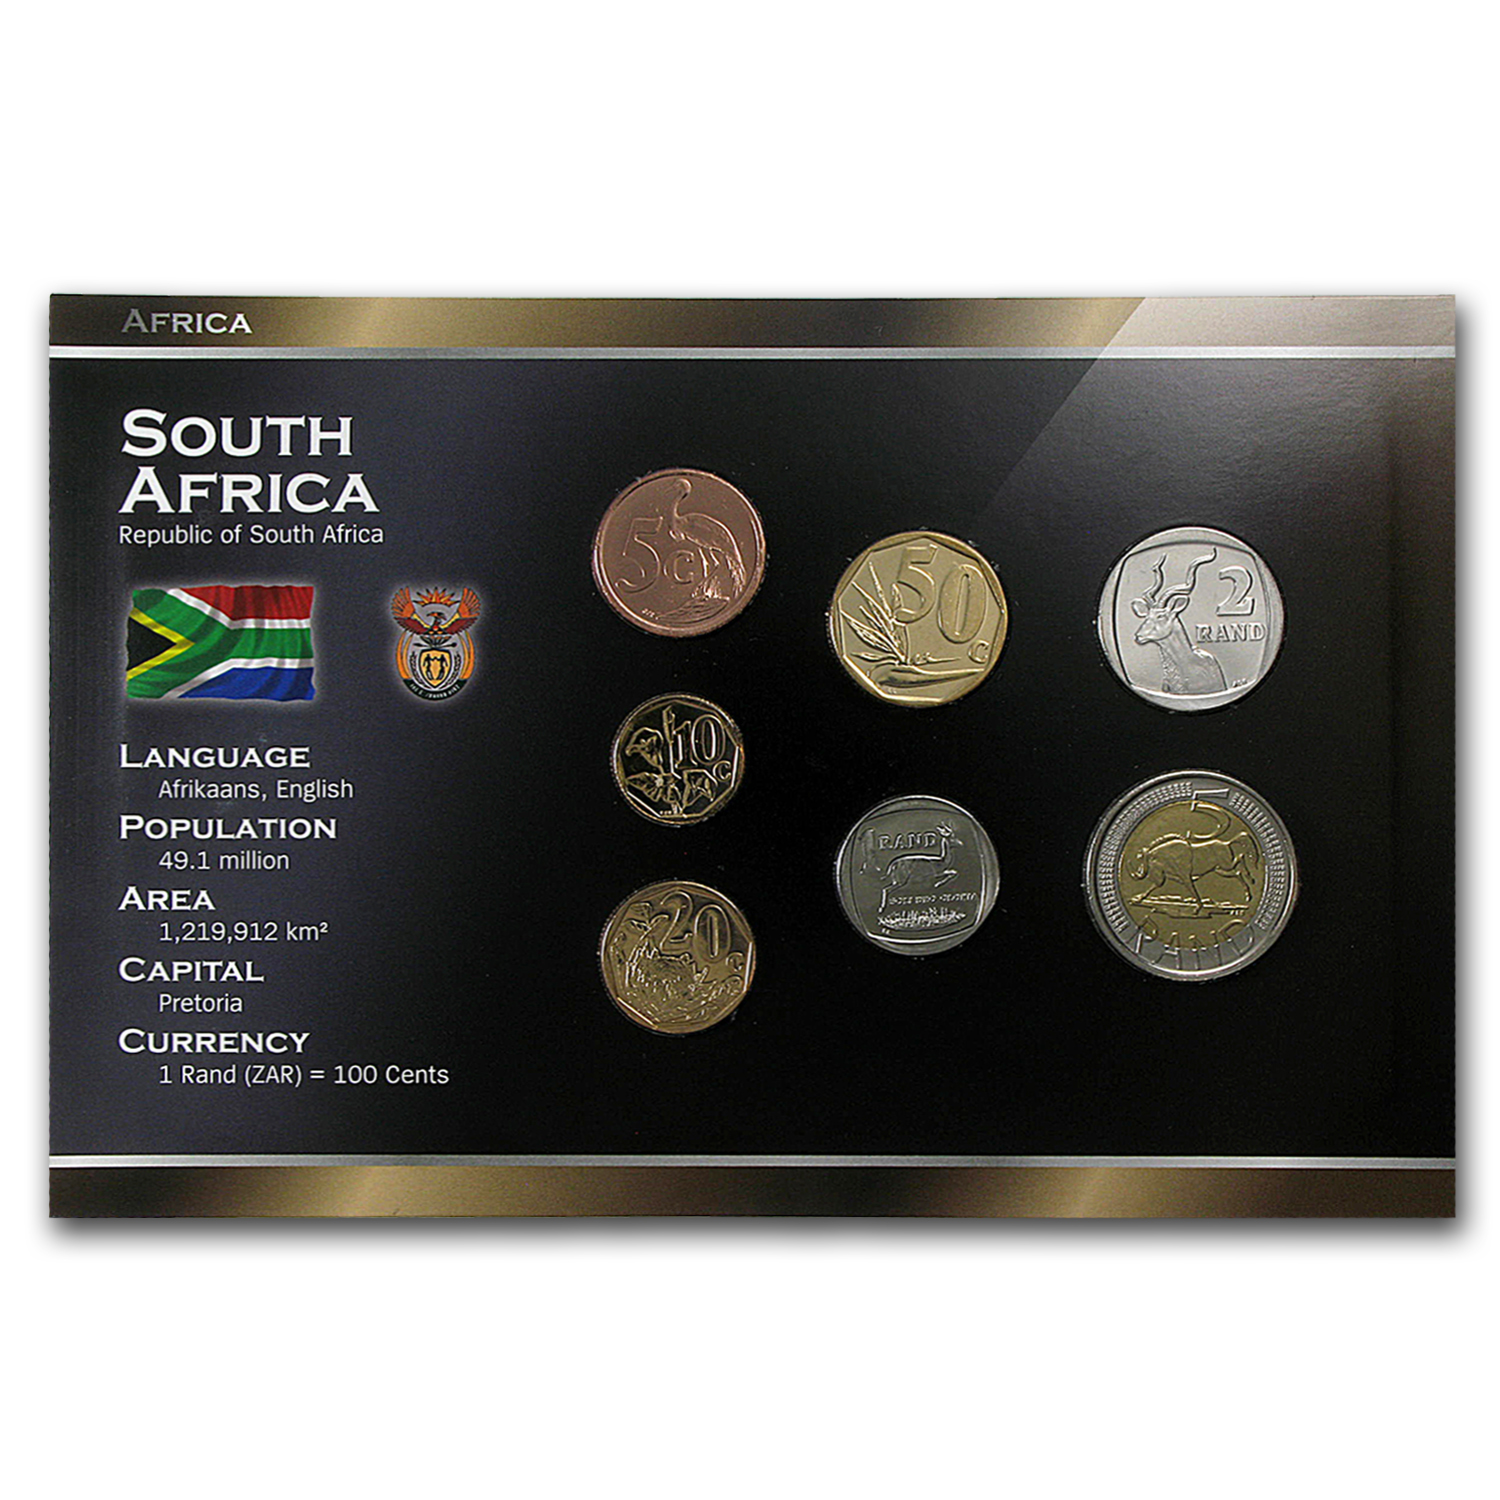 2006-2011 South Africa 5 Cent-5 Rand Coin Set BU